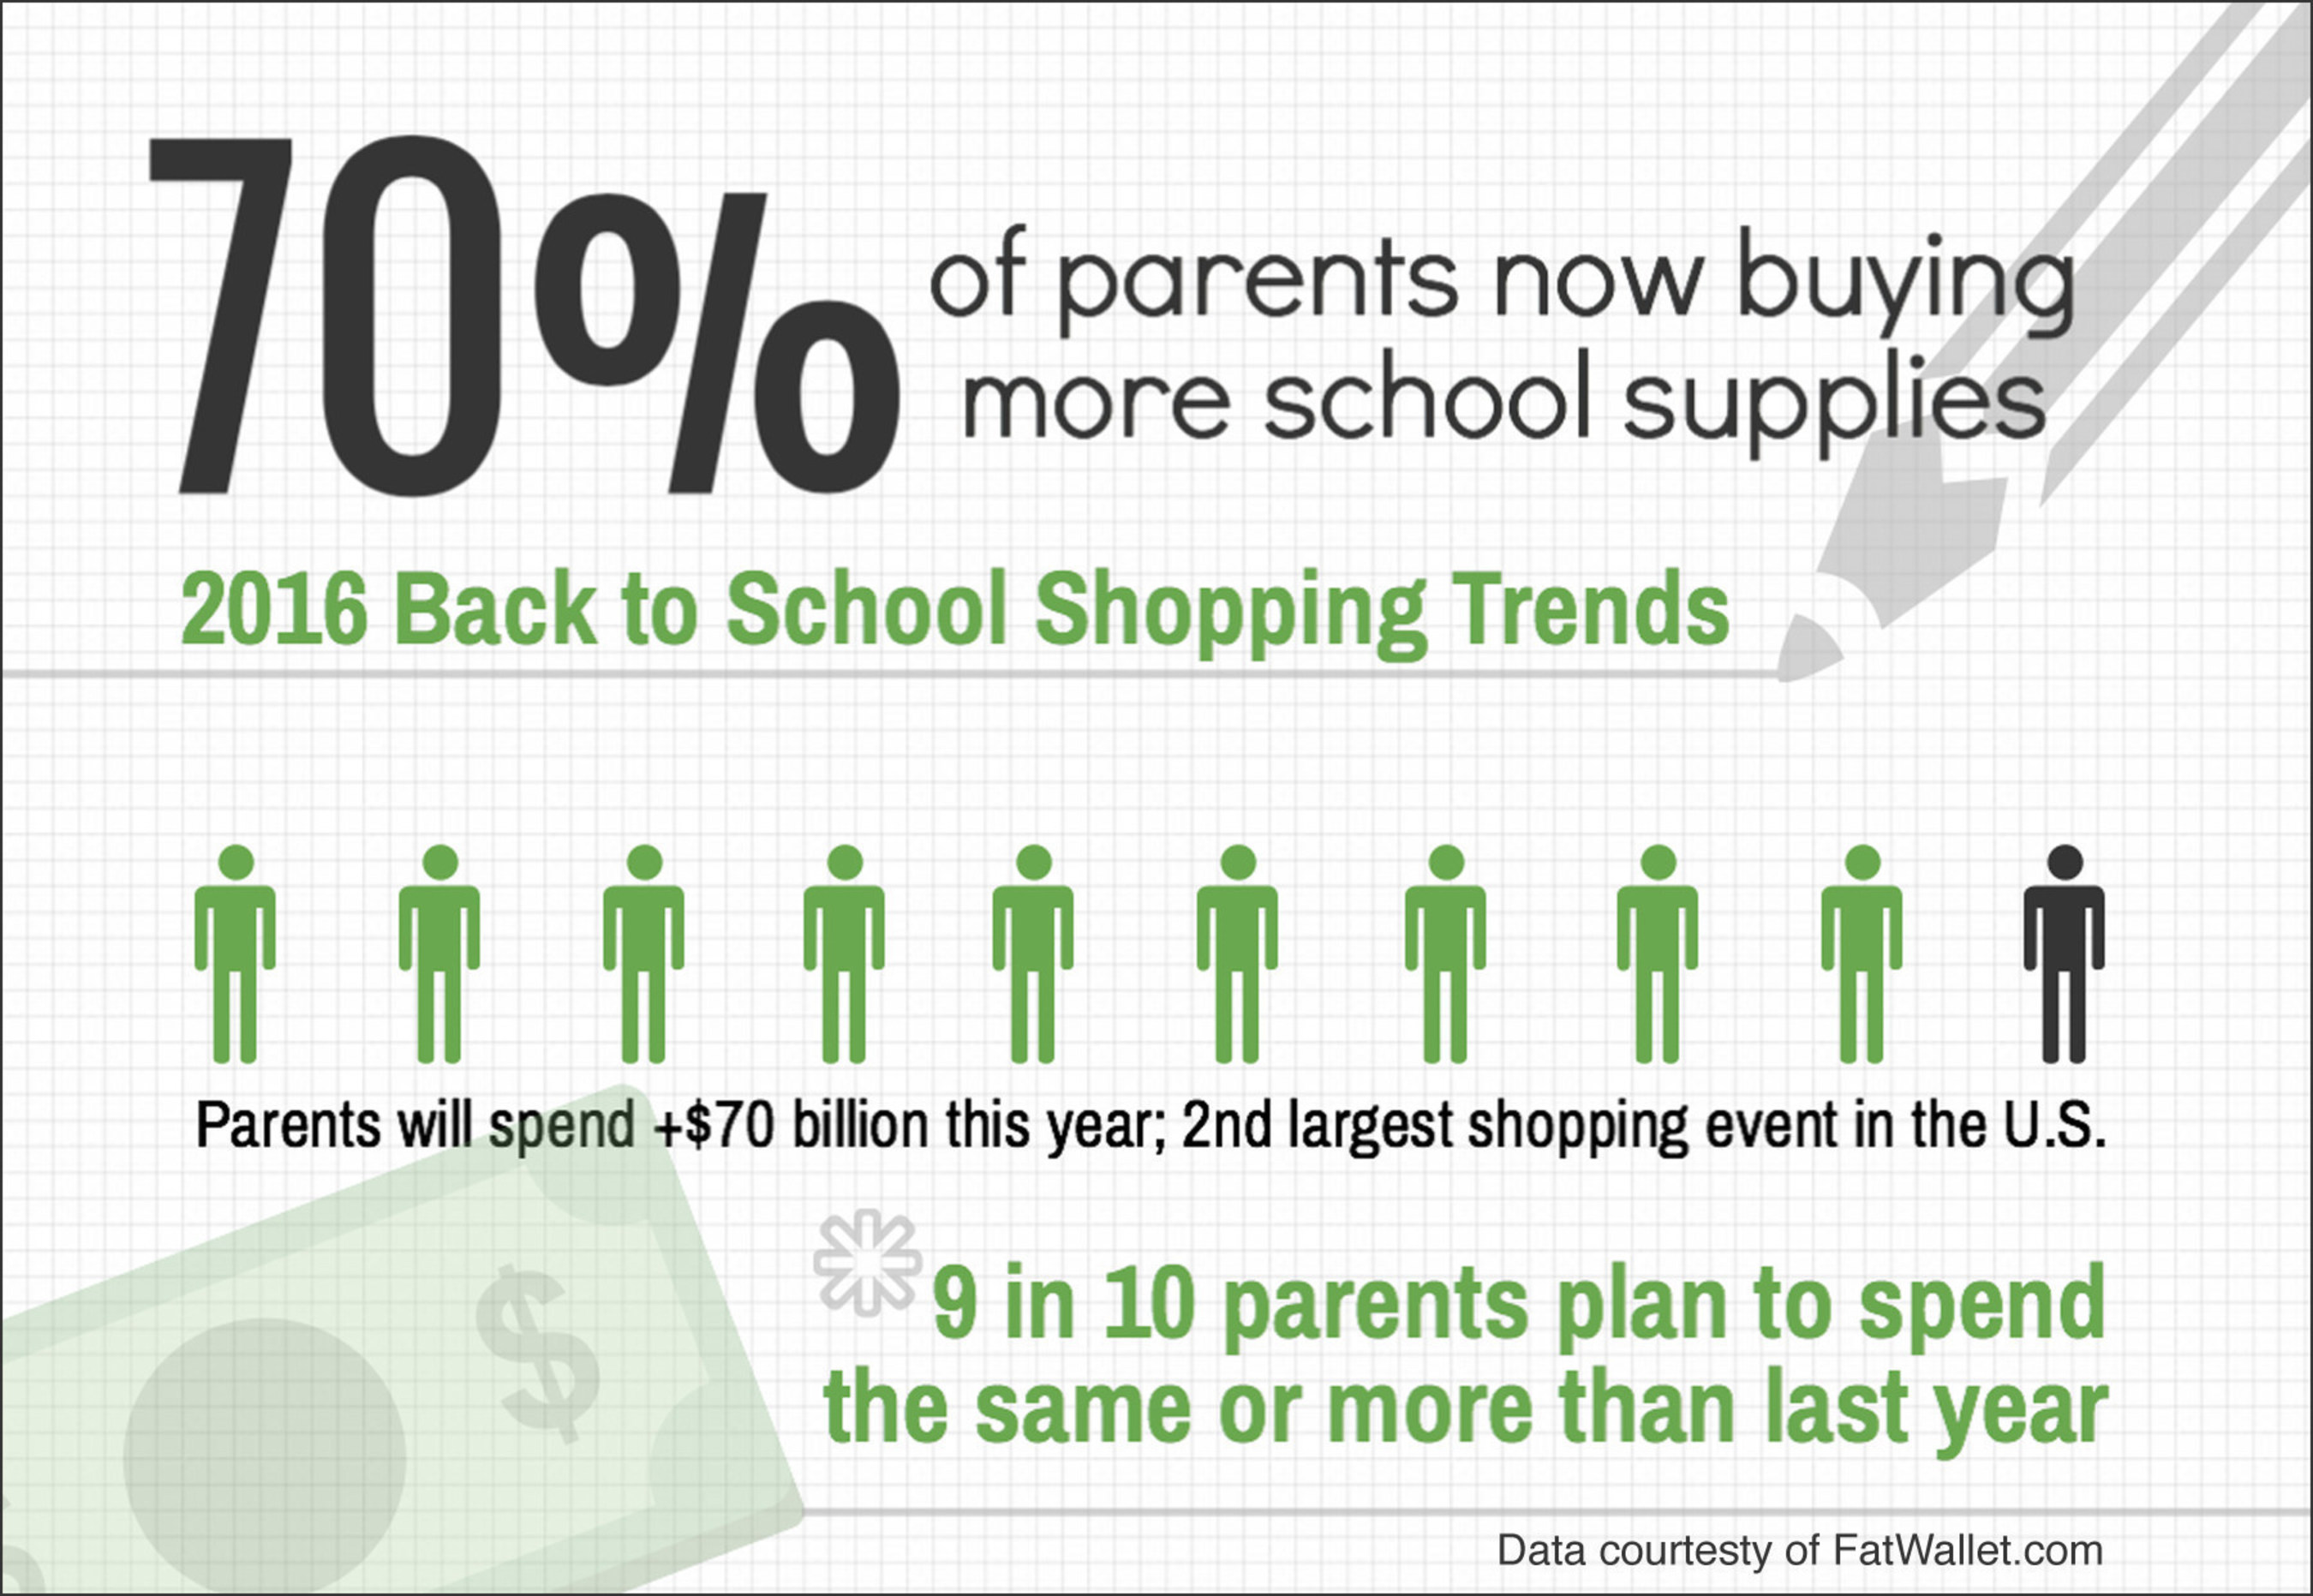 2016 Back to School Shopping Survey reports parents' spending habits and concerns - via fatwallet.com